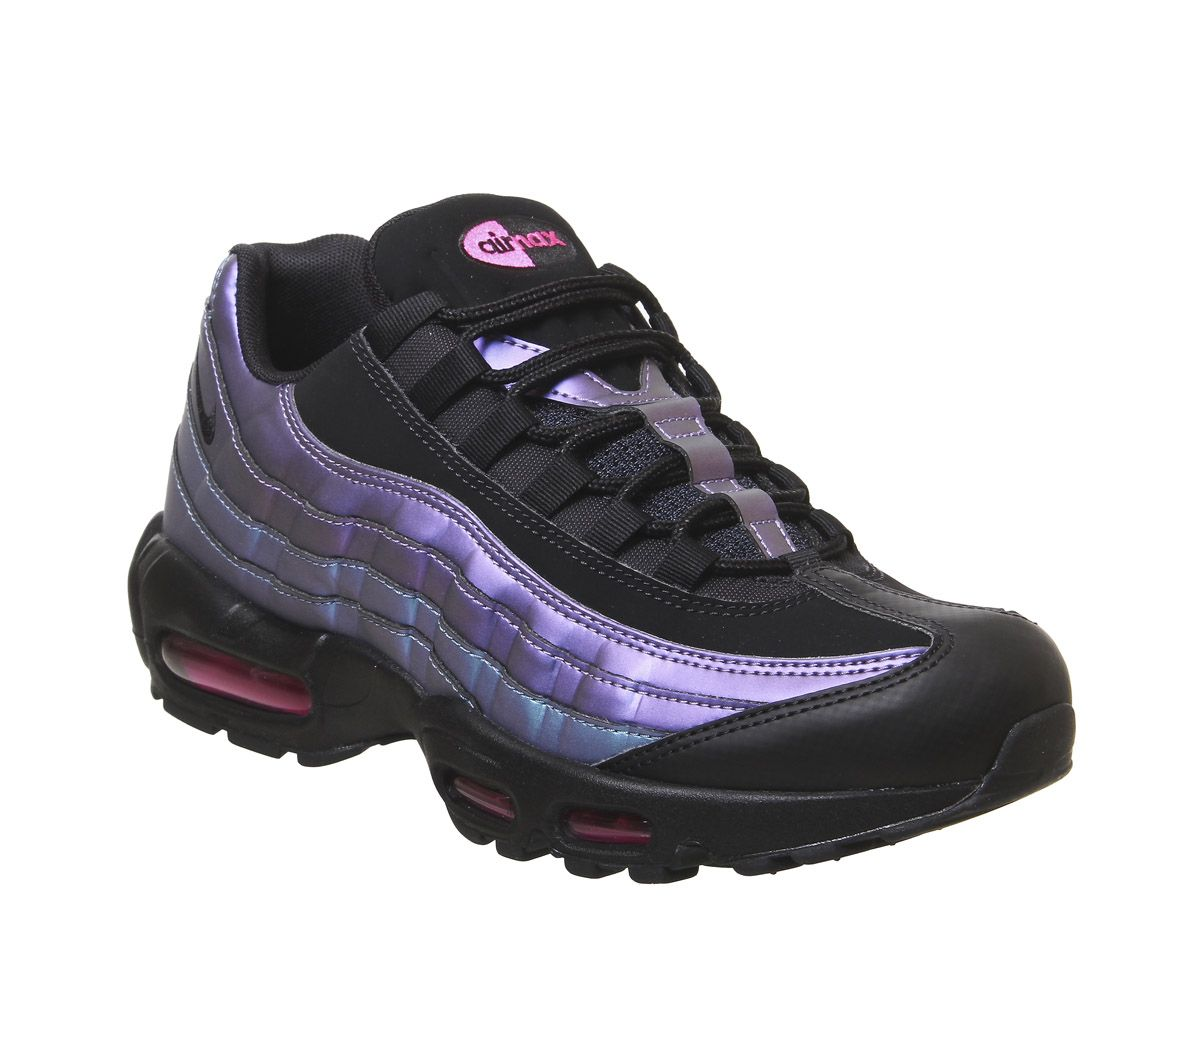 newest 5432f fe924 Nike Air Max 95 Trainers Black Black Laser Fuchsia - His trainers